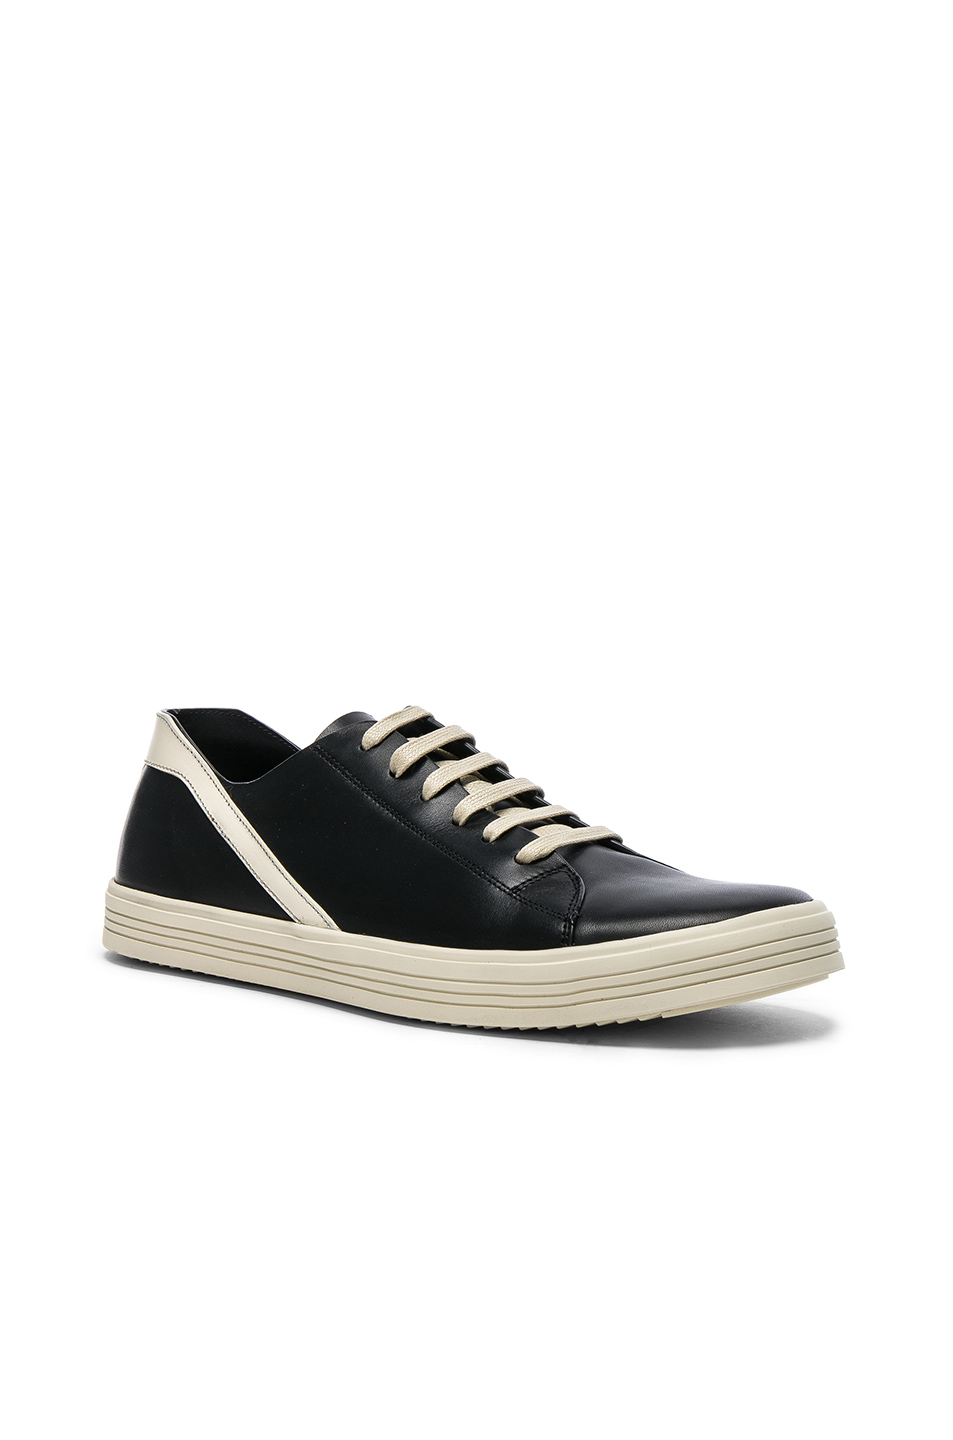 Rick Owens Leather Geothrasher Sneakers in Black